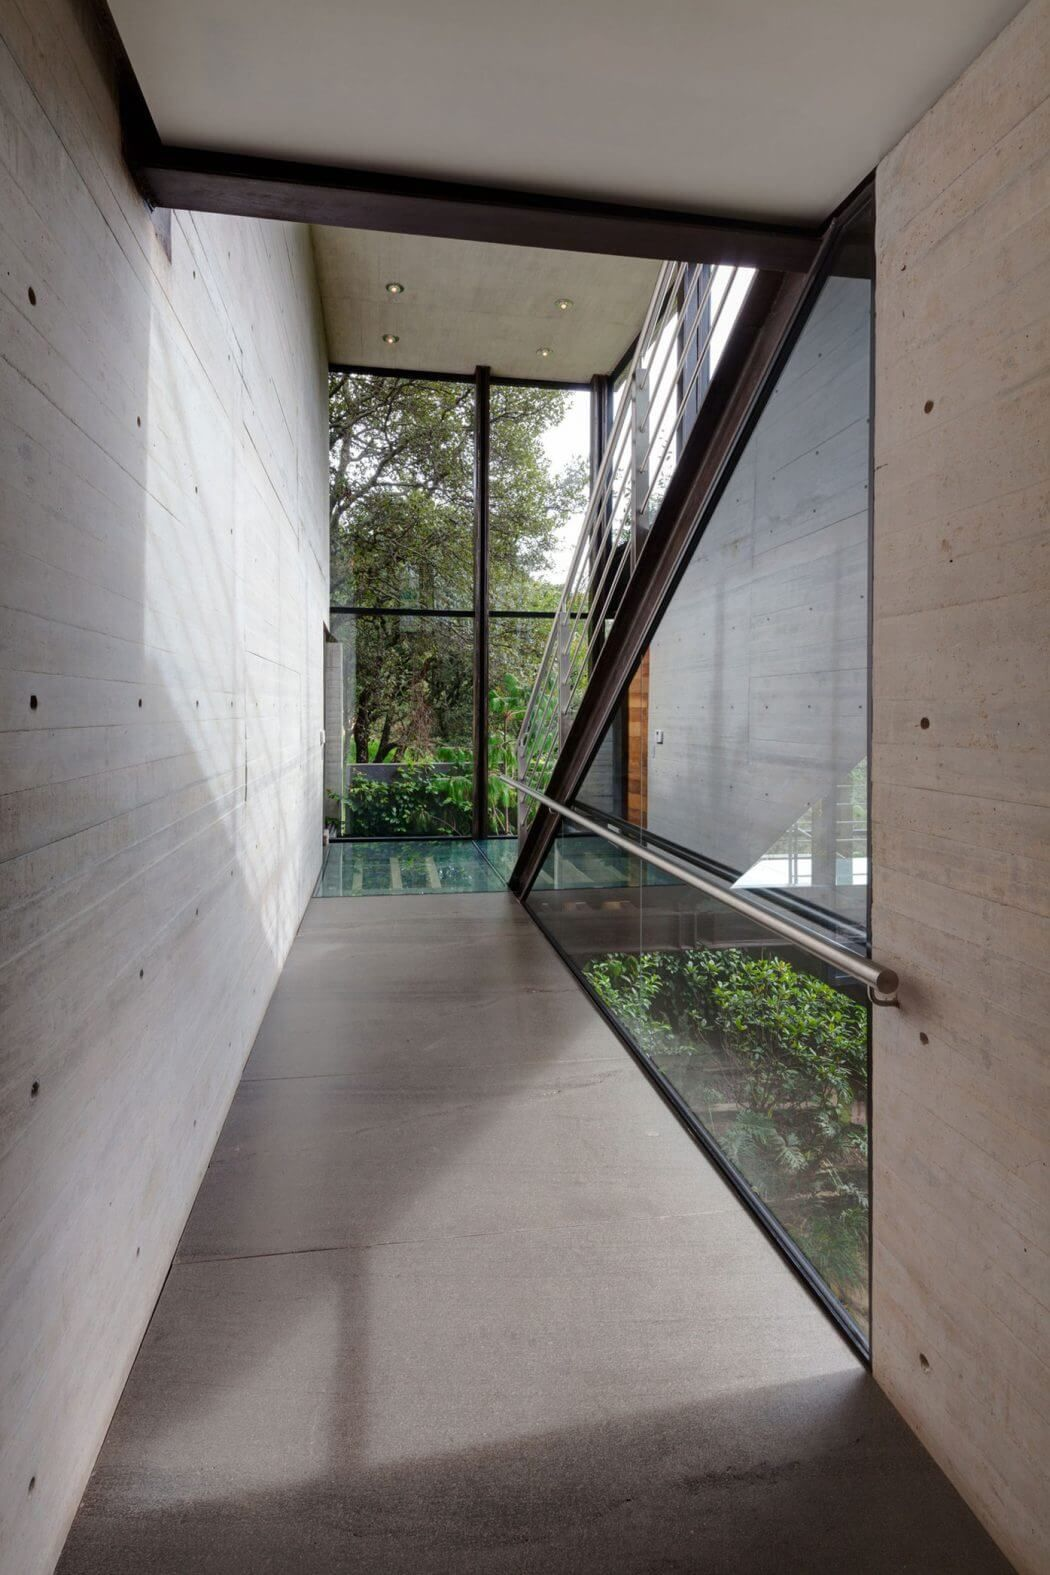 Bulthaup B House In Mexico City By Grupoarquitectura Bulthaup - Contemporary glass residence